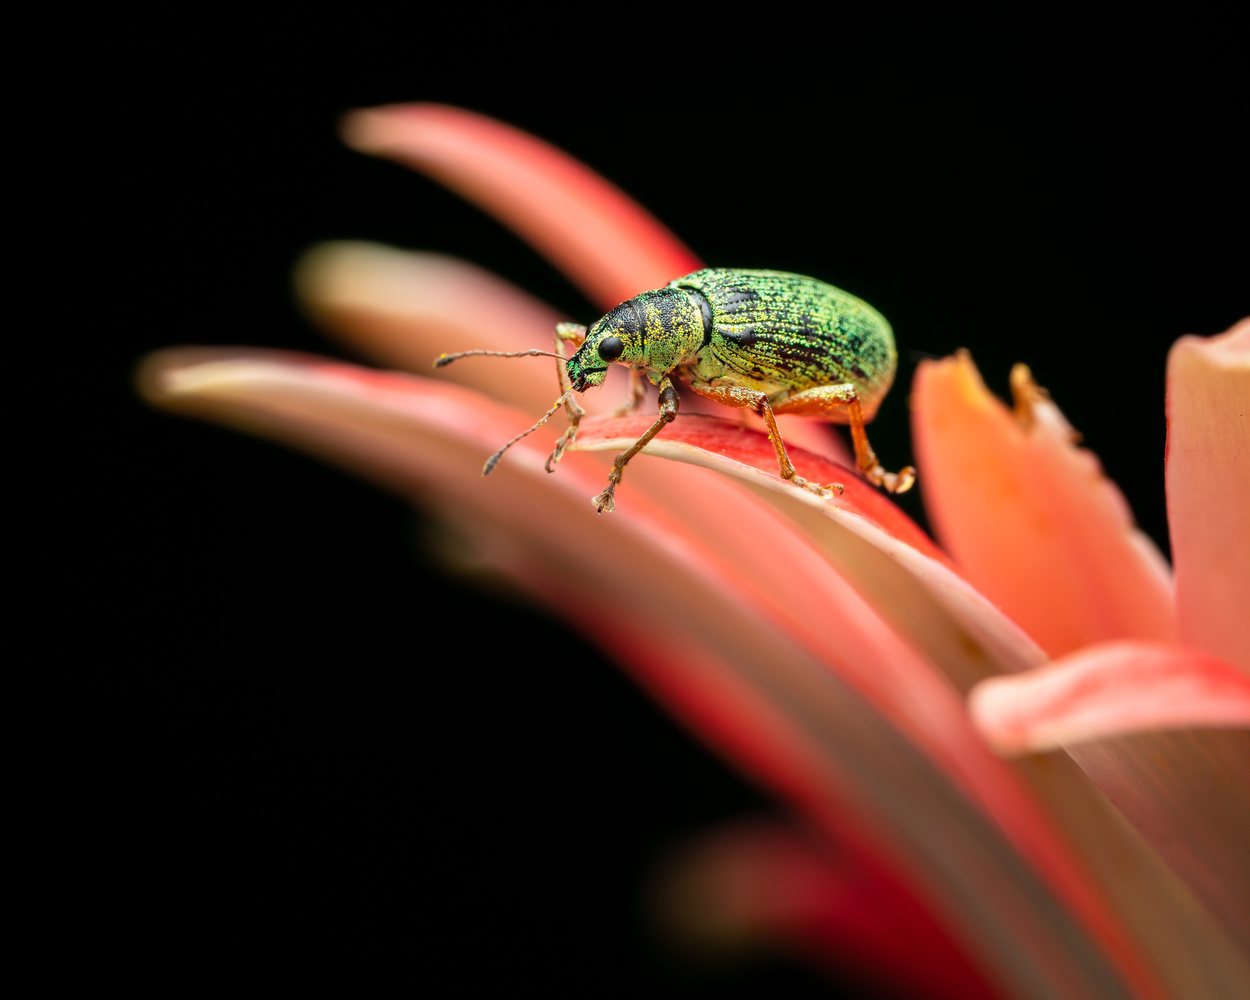 Insect by Skyler Ewing